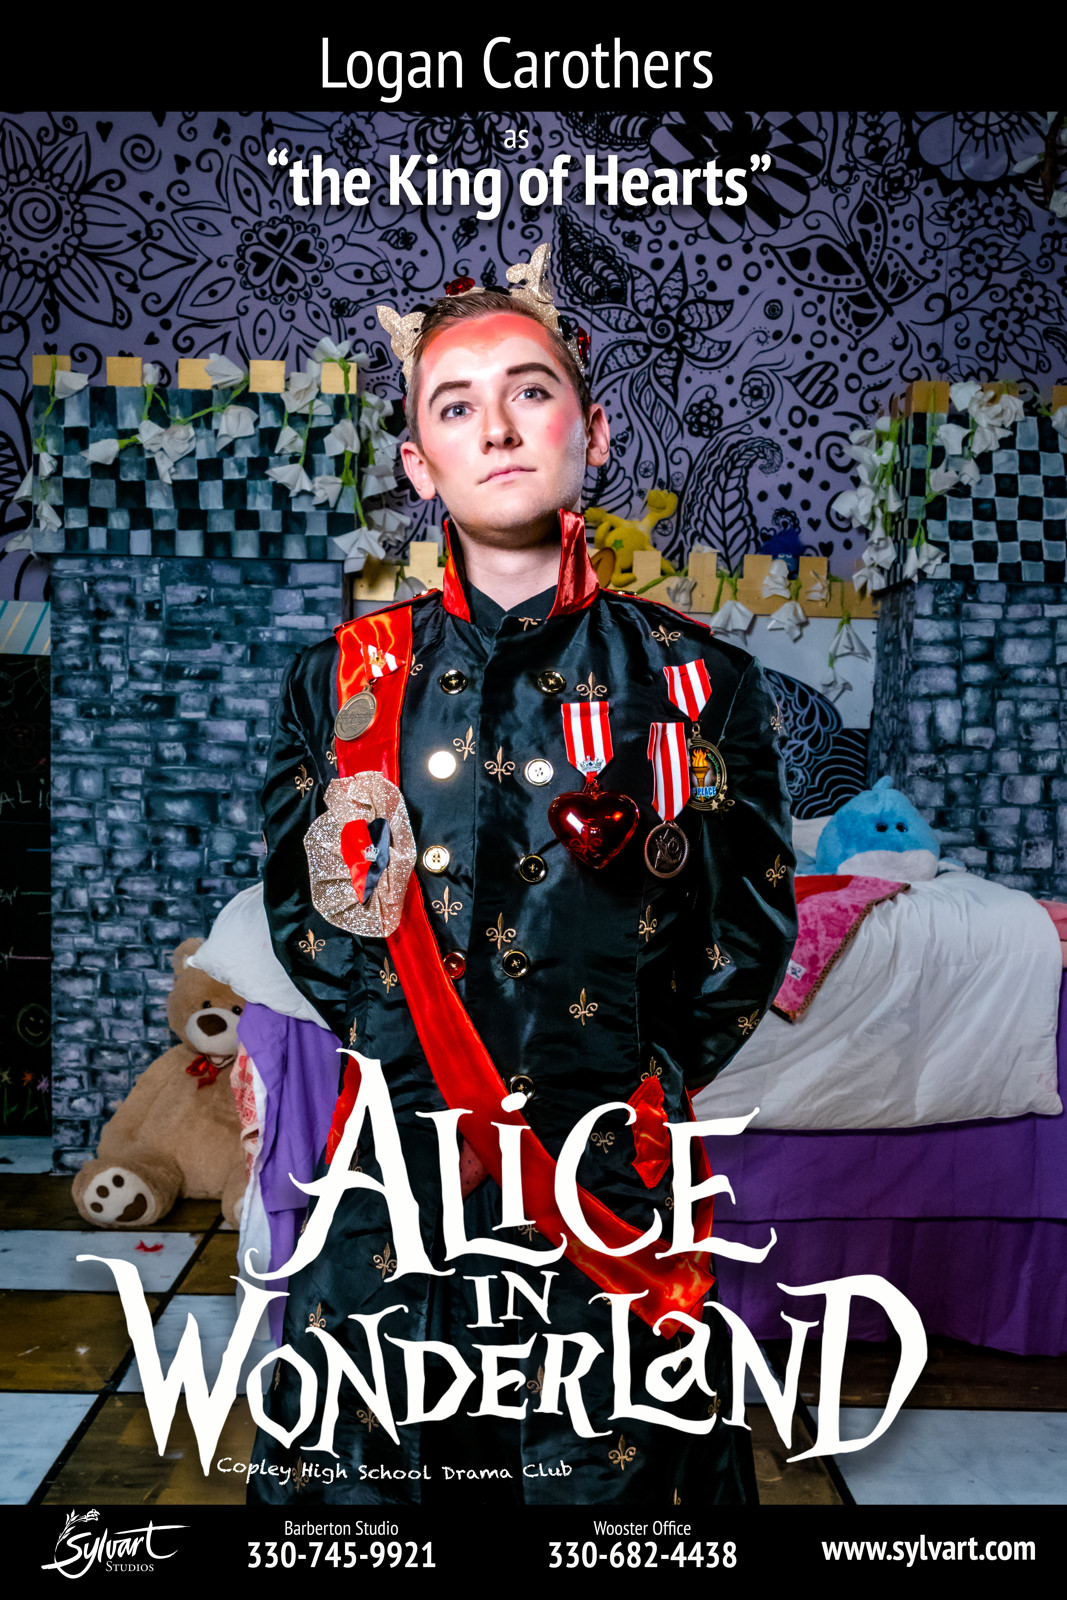 LOGAN-Alice in Wonderland.JPG